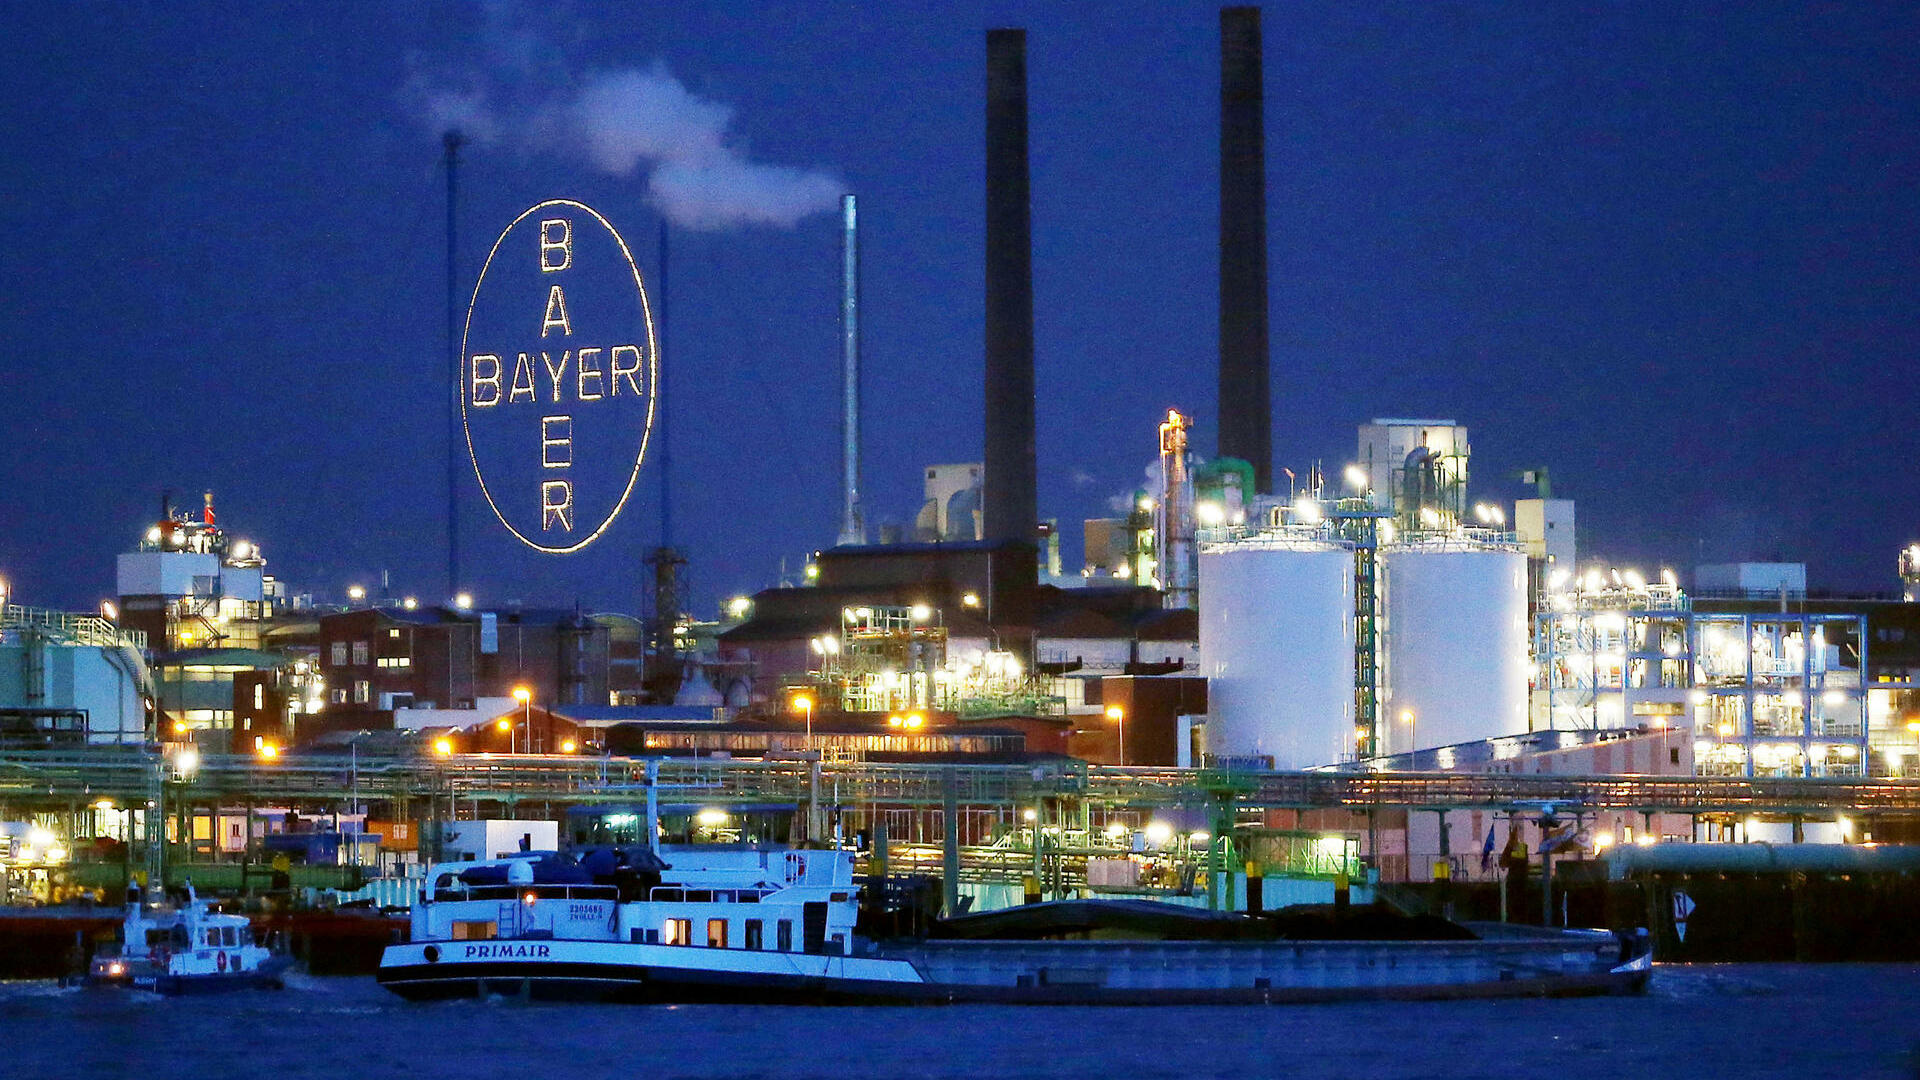 Bayer Quelle: AP